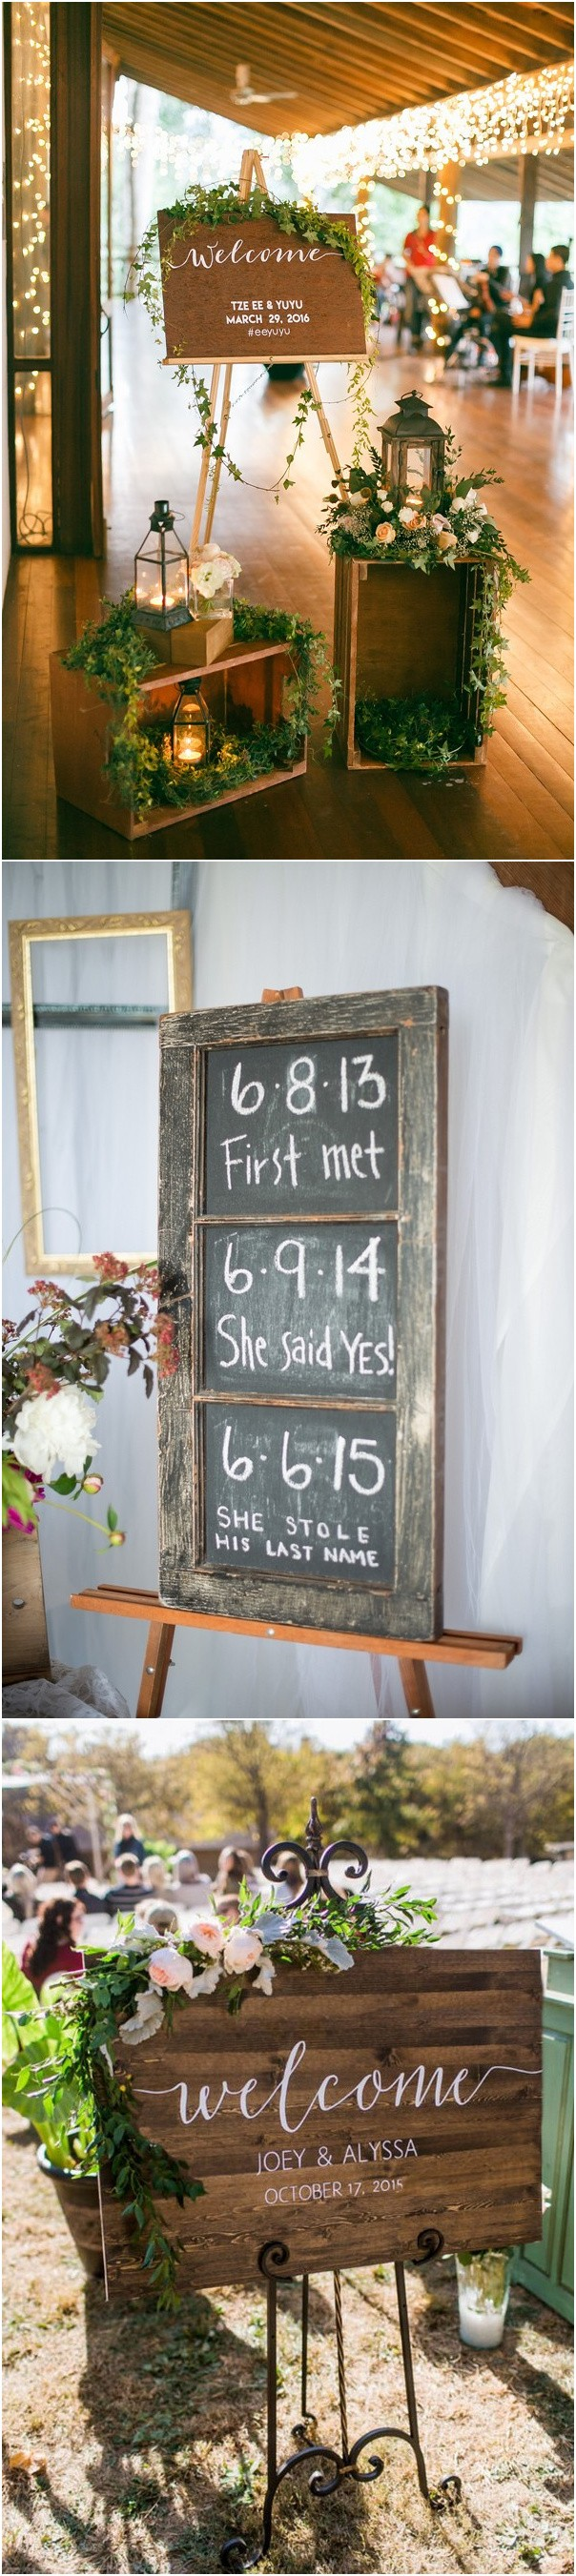 20 Gorgeous Ideas For A Rustic Barn Wedding Page 2 Of 2